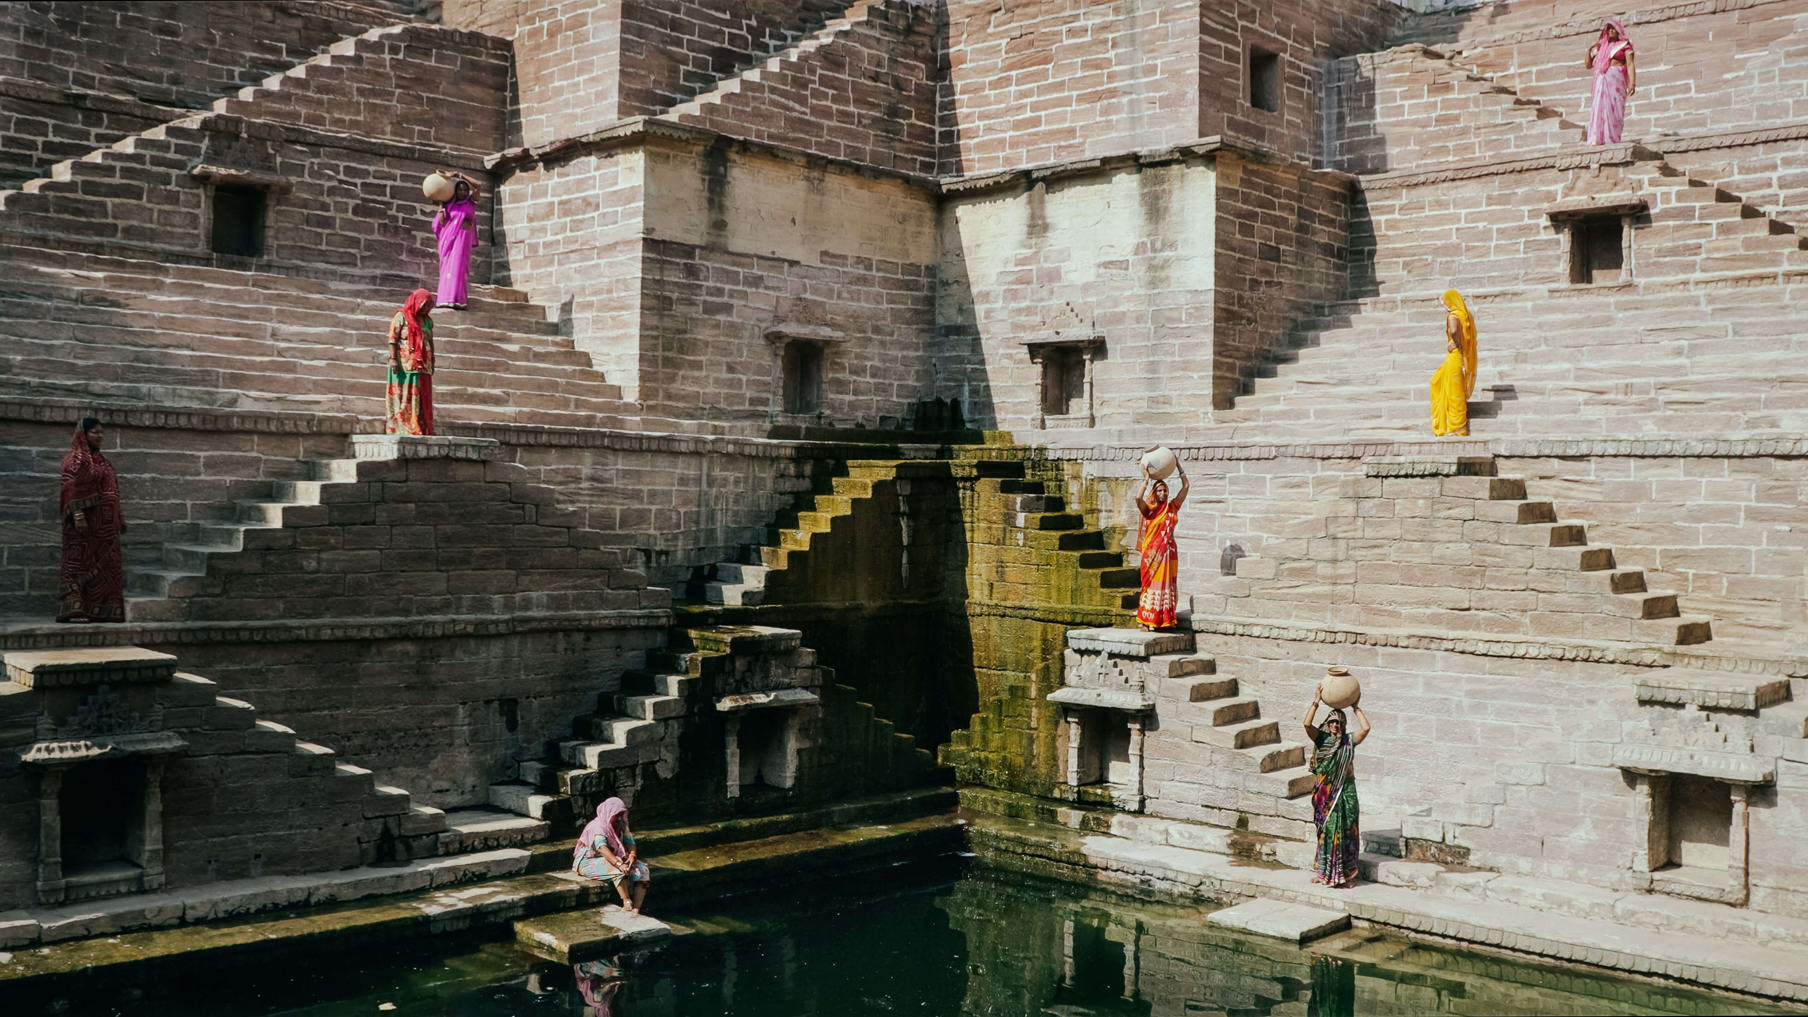 Jodhpur Stepwell with Women in colorful saris